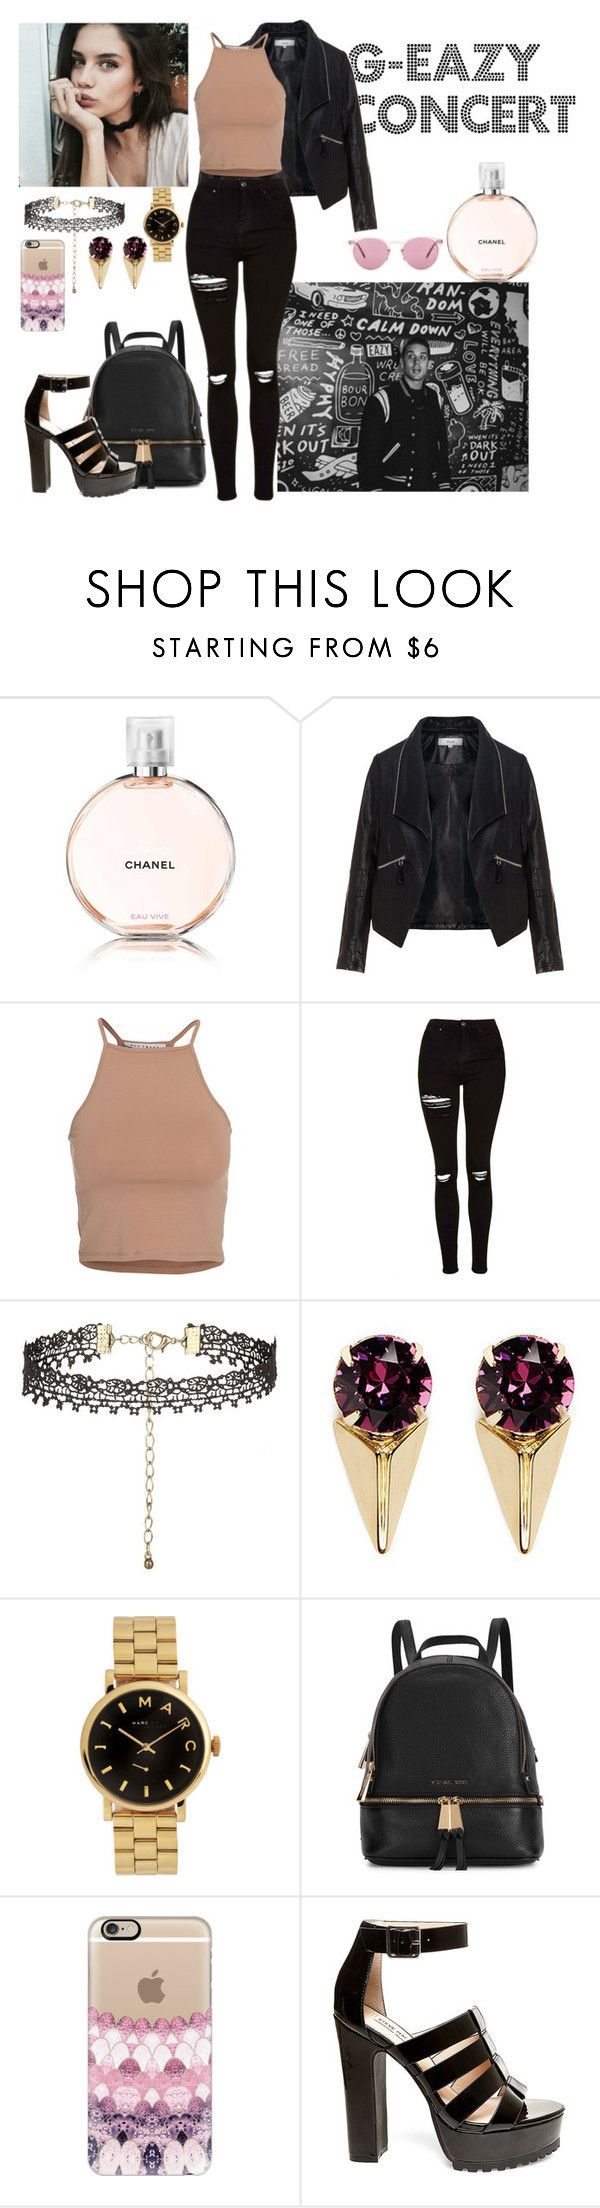 """G-eazy concert [LC]"" by i-m-penguin-purple974 ❤ liked on Polyvore featuring Chanel, Zizzi, NLY Trend, Topshop, Joomi Lim, Marc by Marc Jacobs, Michael Kors, Casetify, Steve Madden and Oliver Peoples"